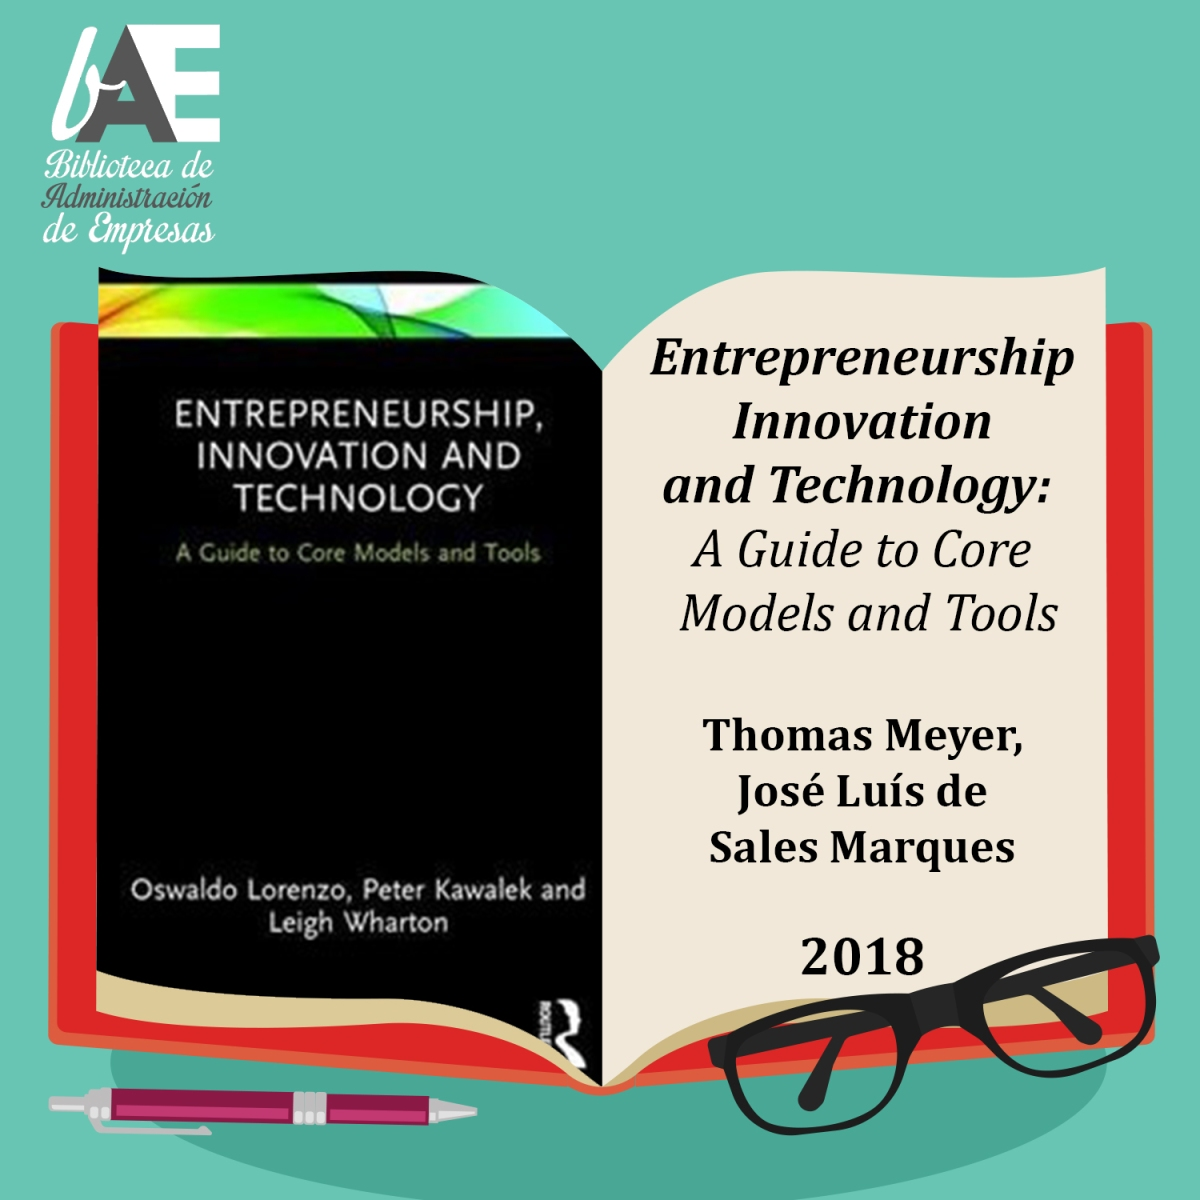 Entrepreneurship Innovation and Technology: A Guide to Core Models and Tools